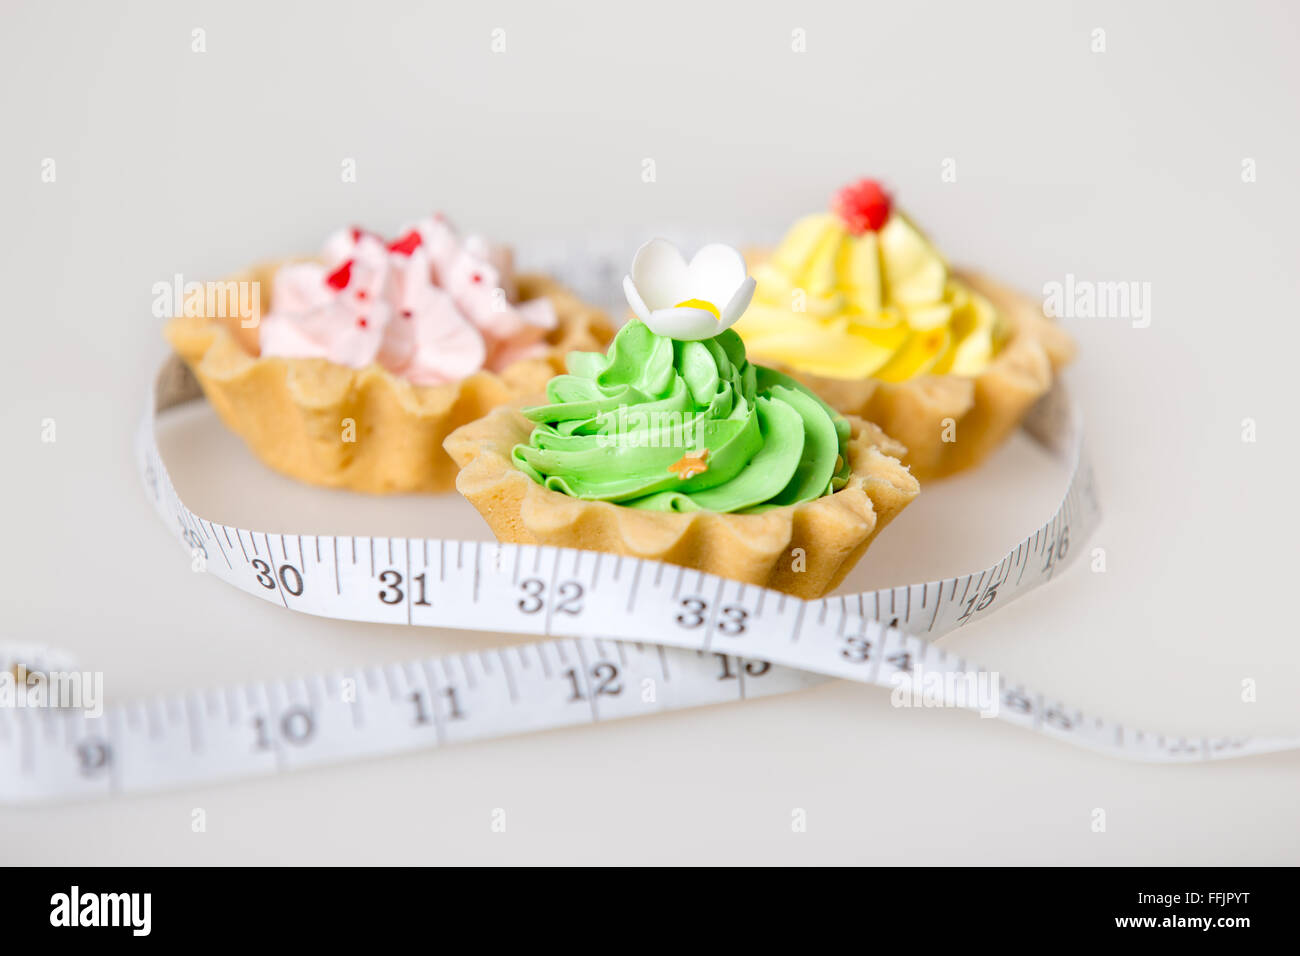 Three colorful green, pink and yellow tart cakes wrapped in measuring tape on white background, unhealthy lifestyle - Stock Image